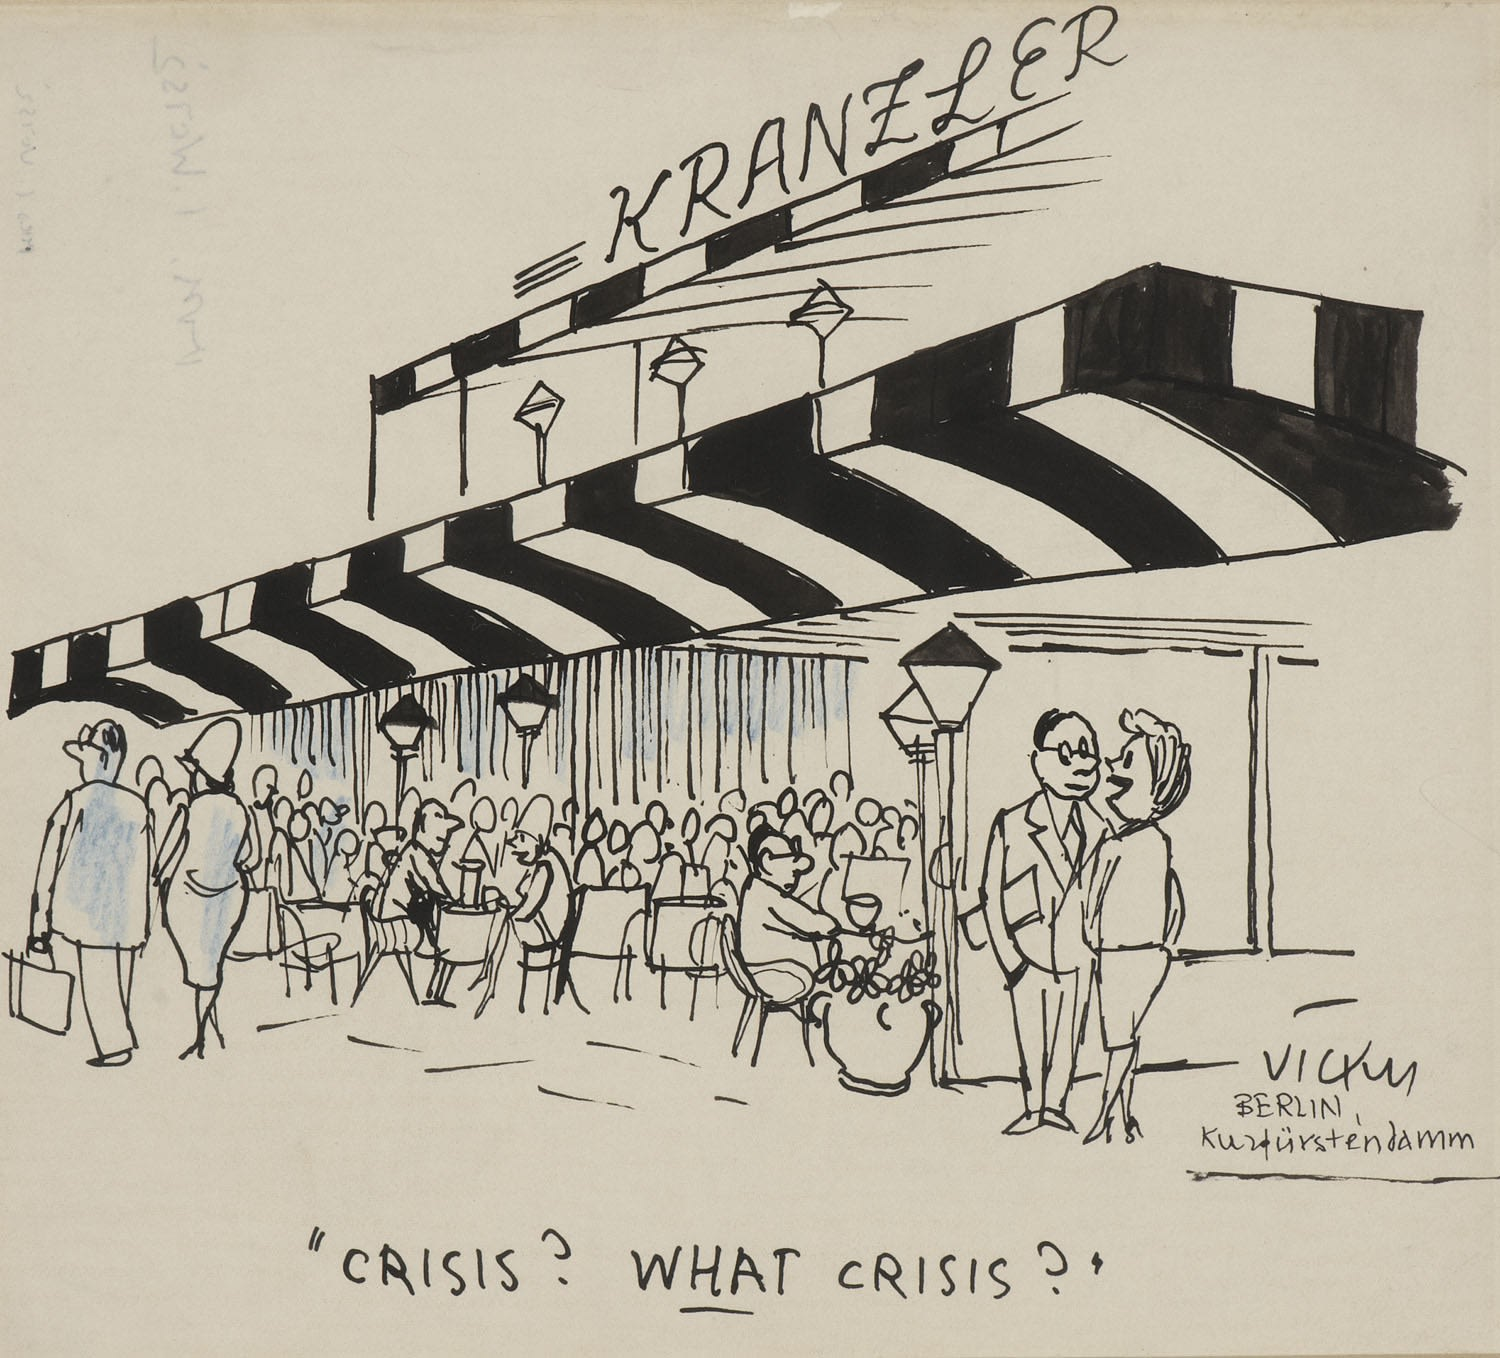 Vicky (1913-1966) Berlin: Crisis? What Crisis? n.d. Pen and ink and wash on paper 21 x 24 cm Ben Uri Collection © Victor Weisz estate To see and discover more about this artist click here